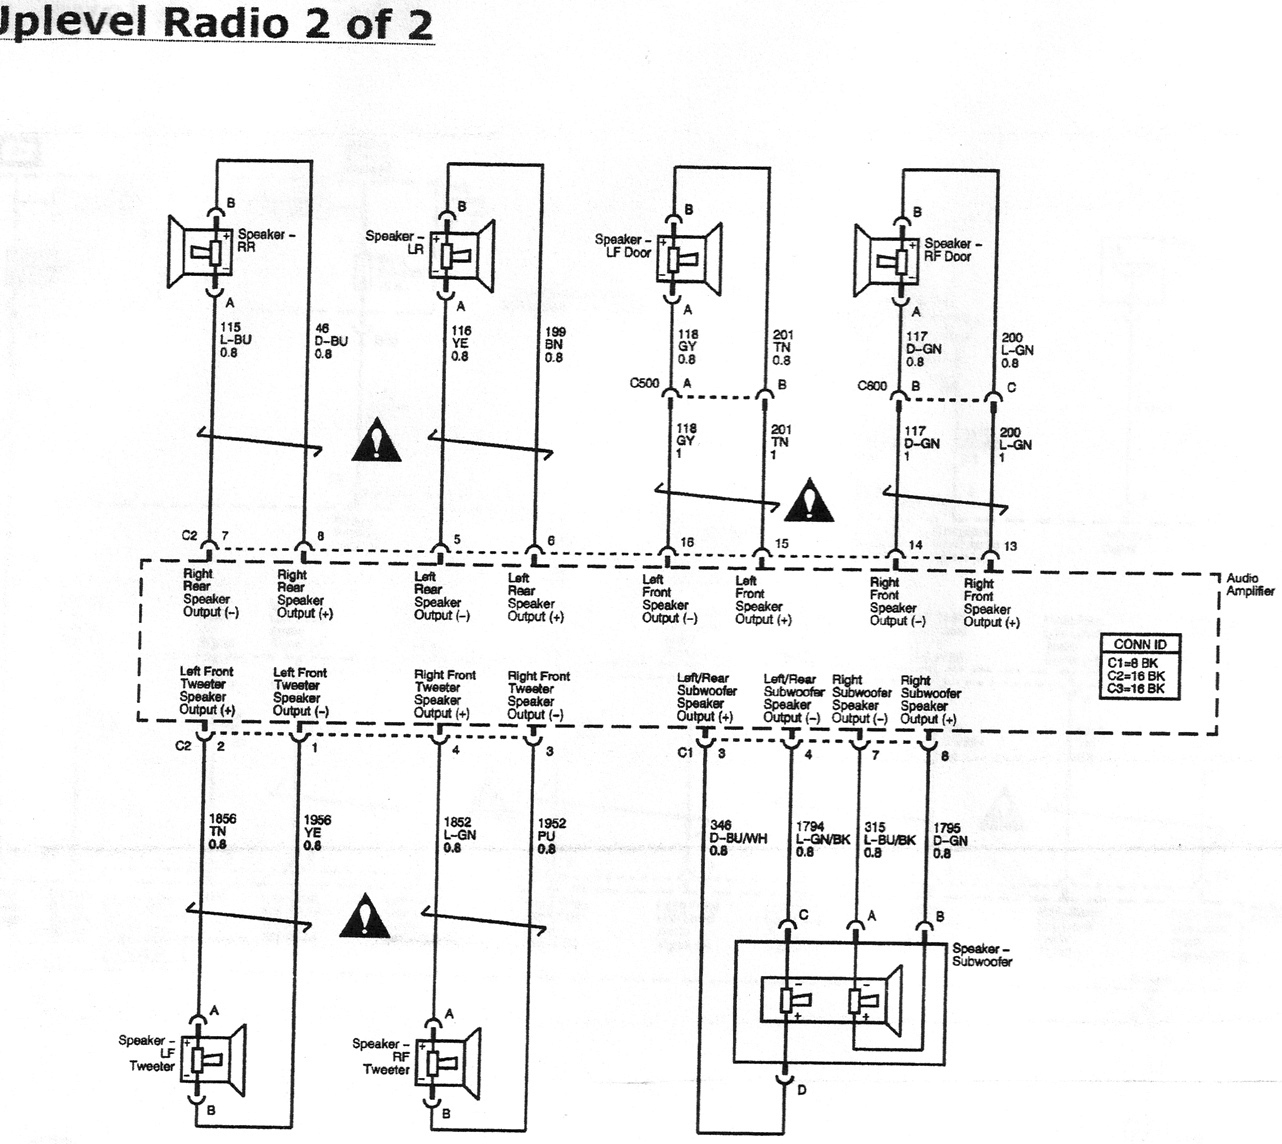 29802 monsoon amp speaker replacement monsoon_wiring_diagram_page_2 monsoon amp and speaker replacement saturn sky forums saturn 2005 Pontiac Grand Prix Wiring Diagrams at edmiracle.co